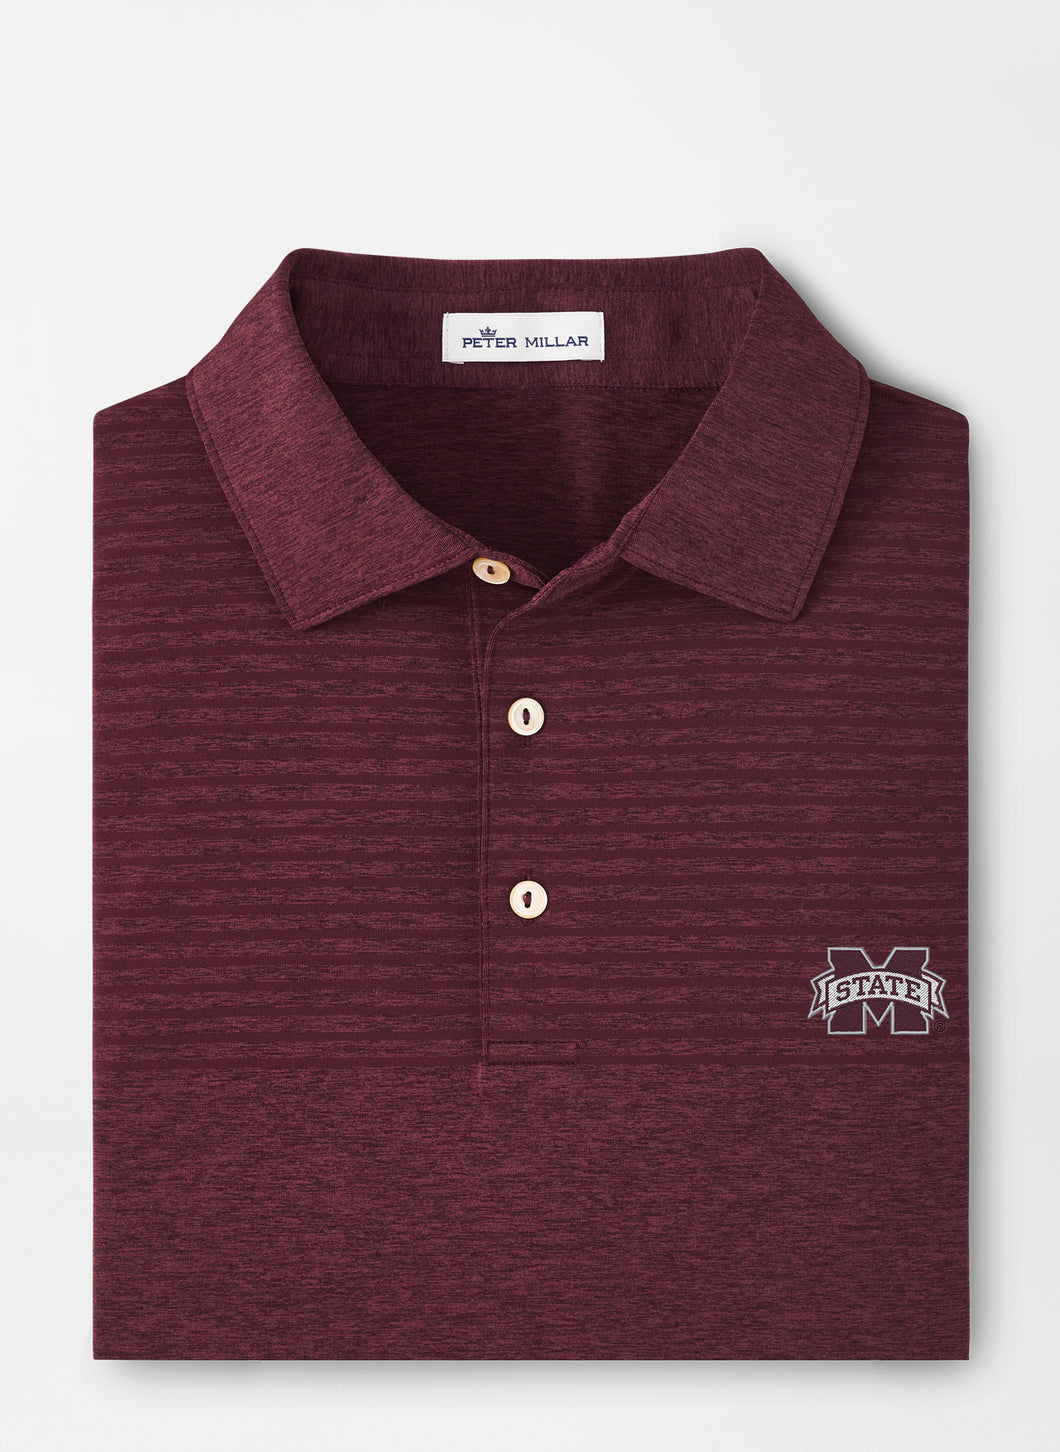 Peter Millar MSU Mississippi State Engineered Stripe Performance Polo: Maroon